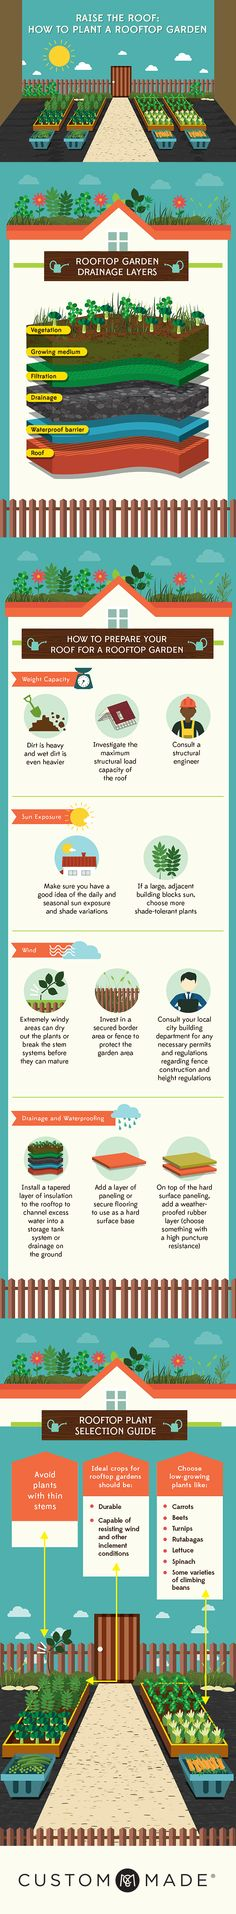 How to Plant a Rooftop Garden - Garden Matter